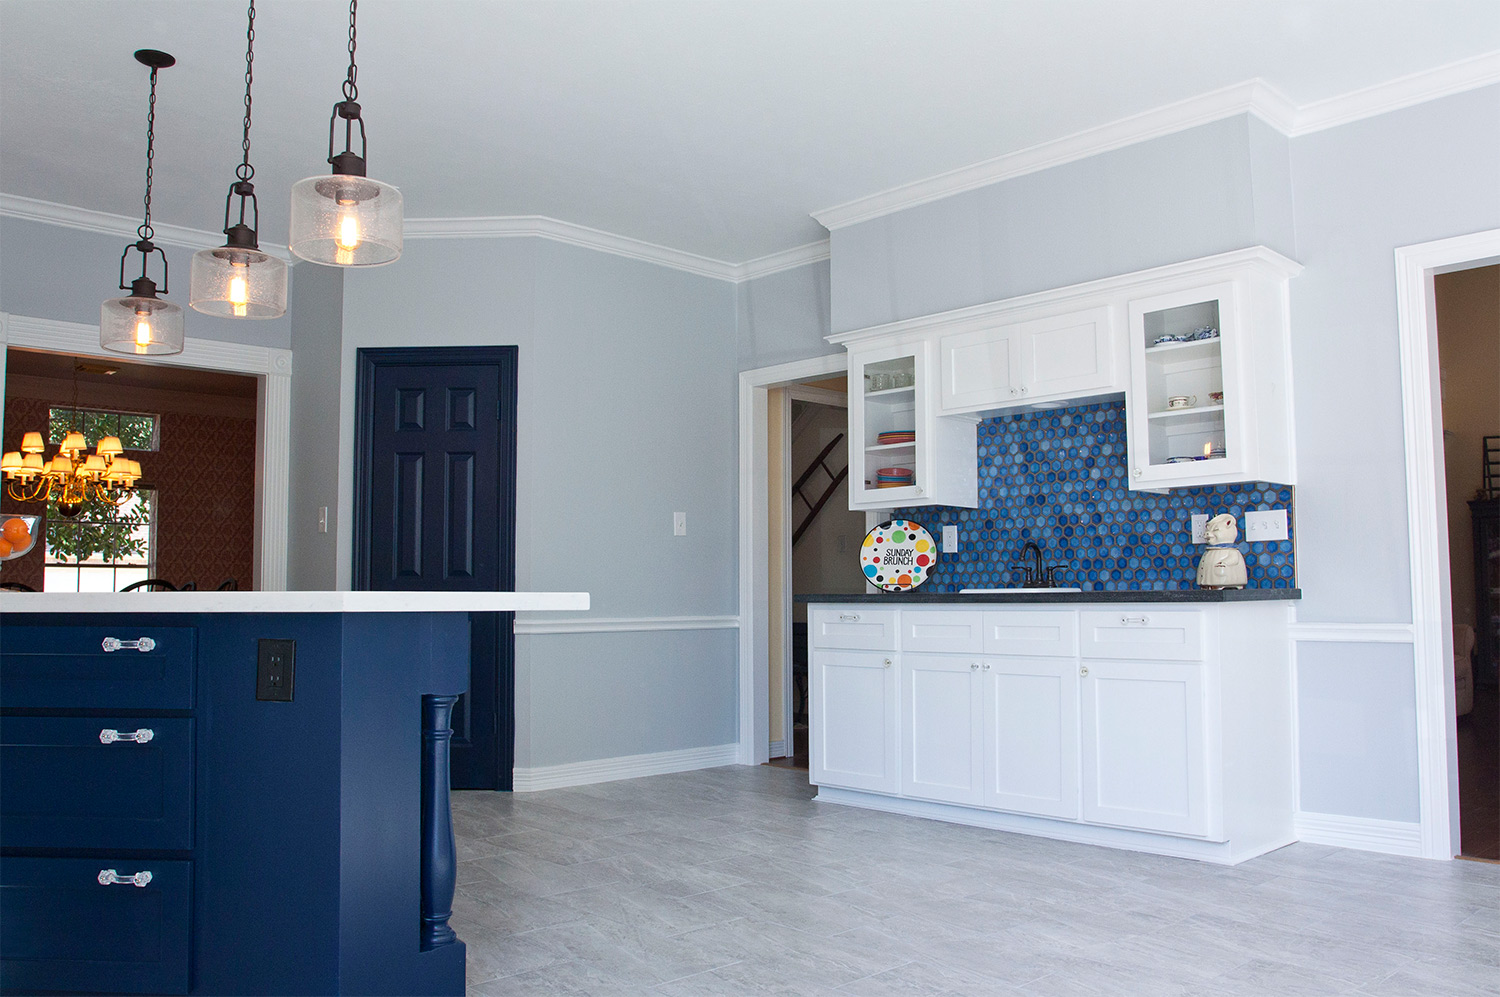 Remodel Kitchen Project in Katy